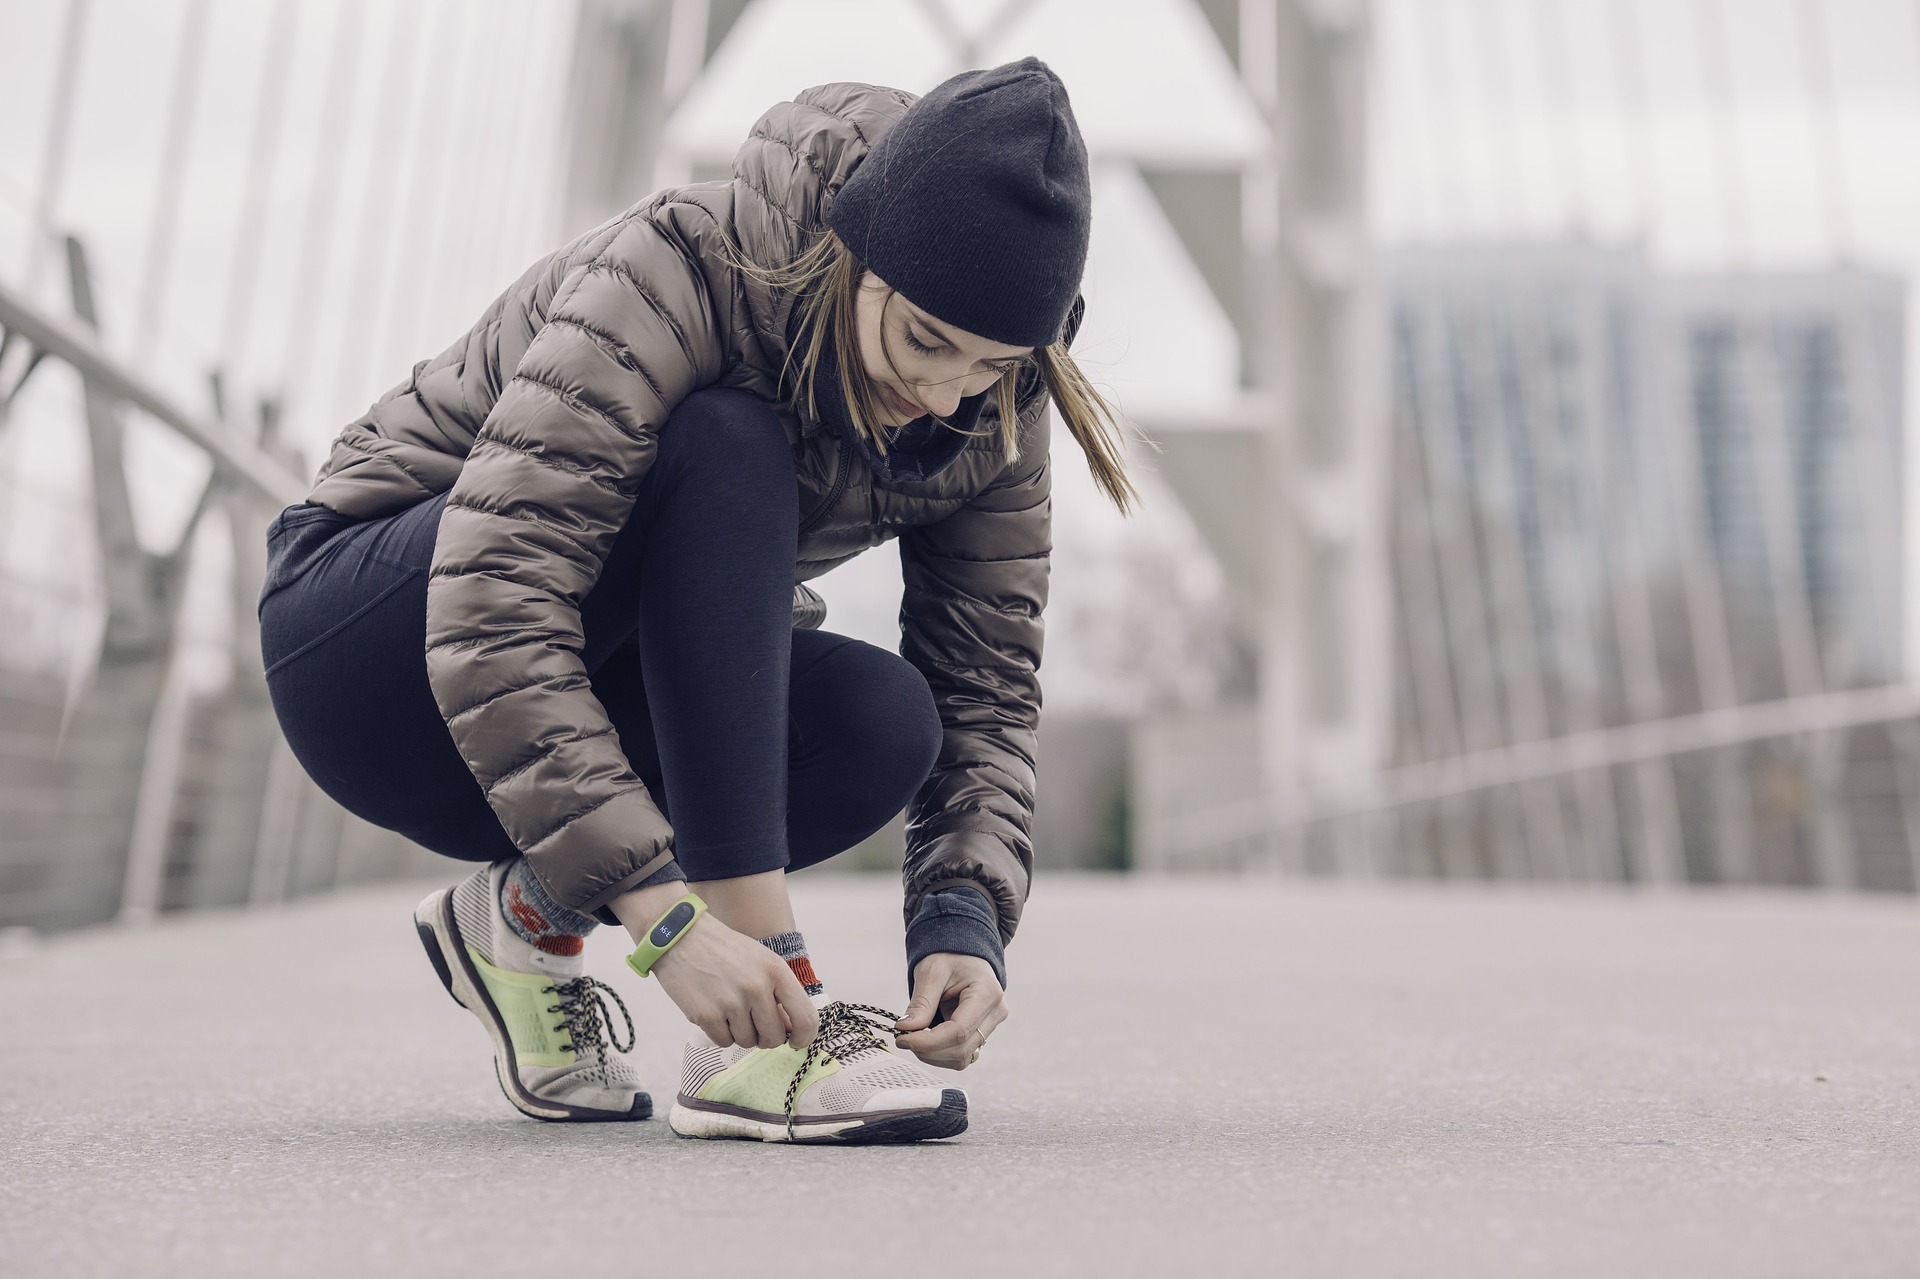 Woman in winter gear tying a shoe on a city bridge